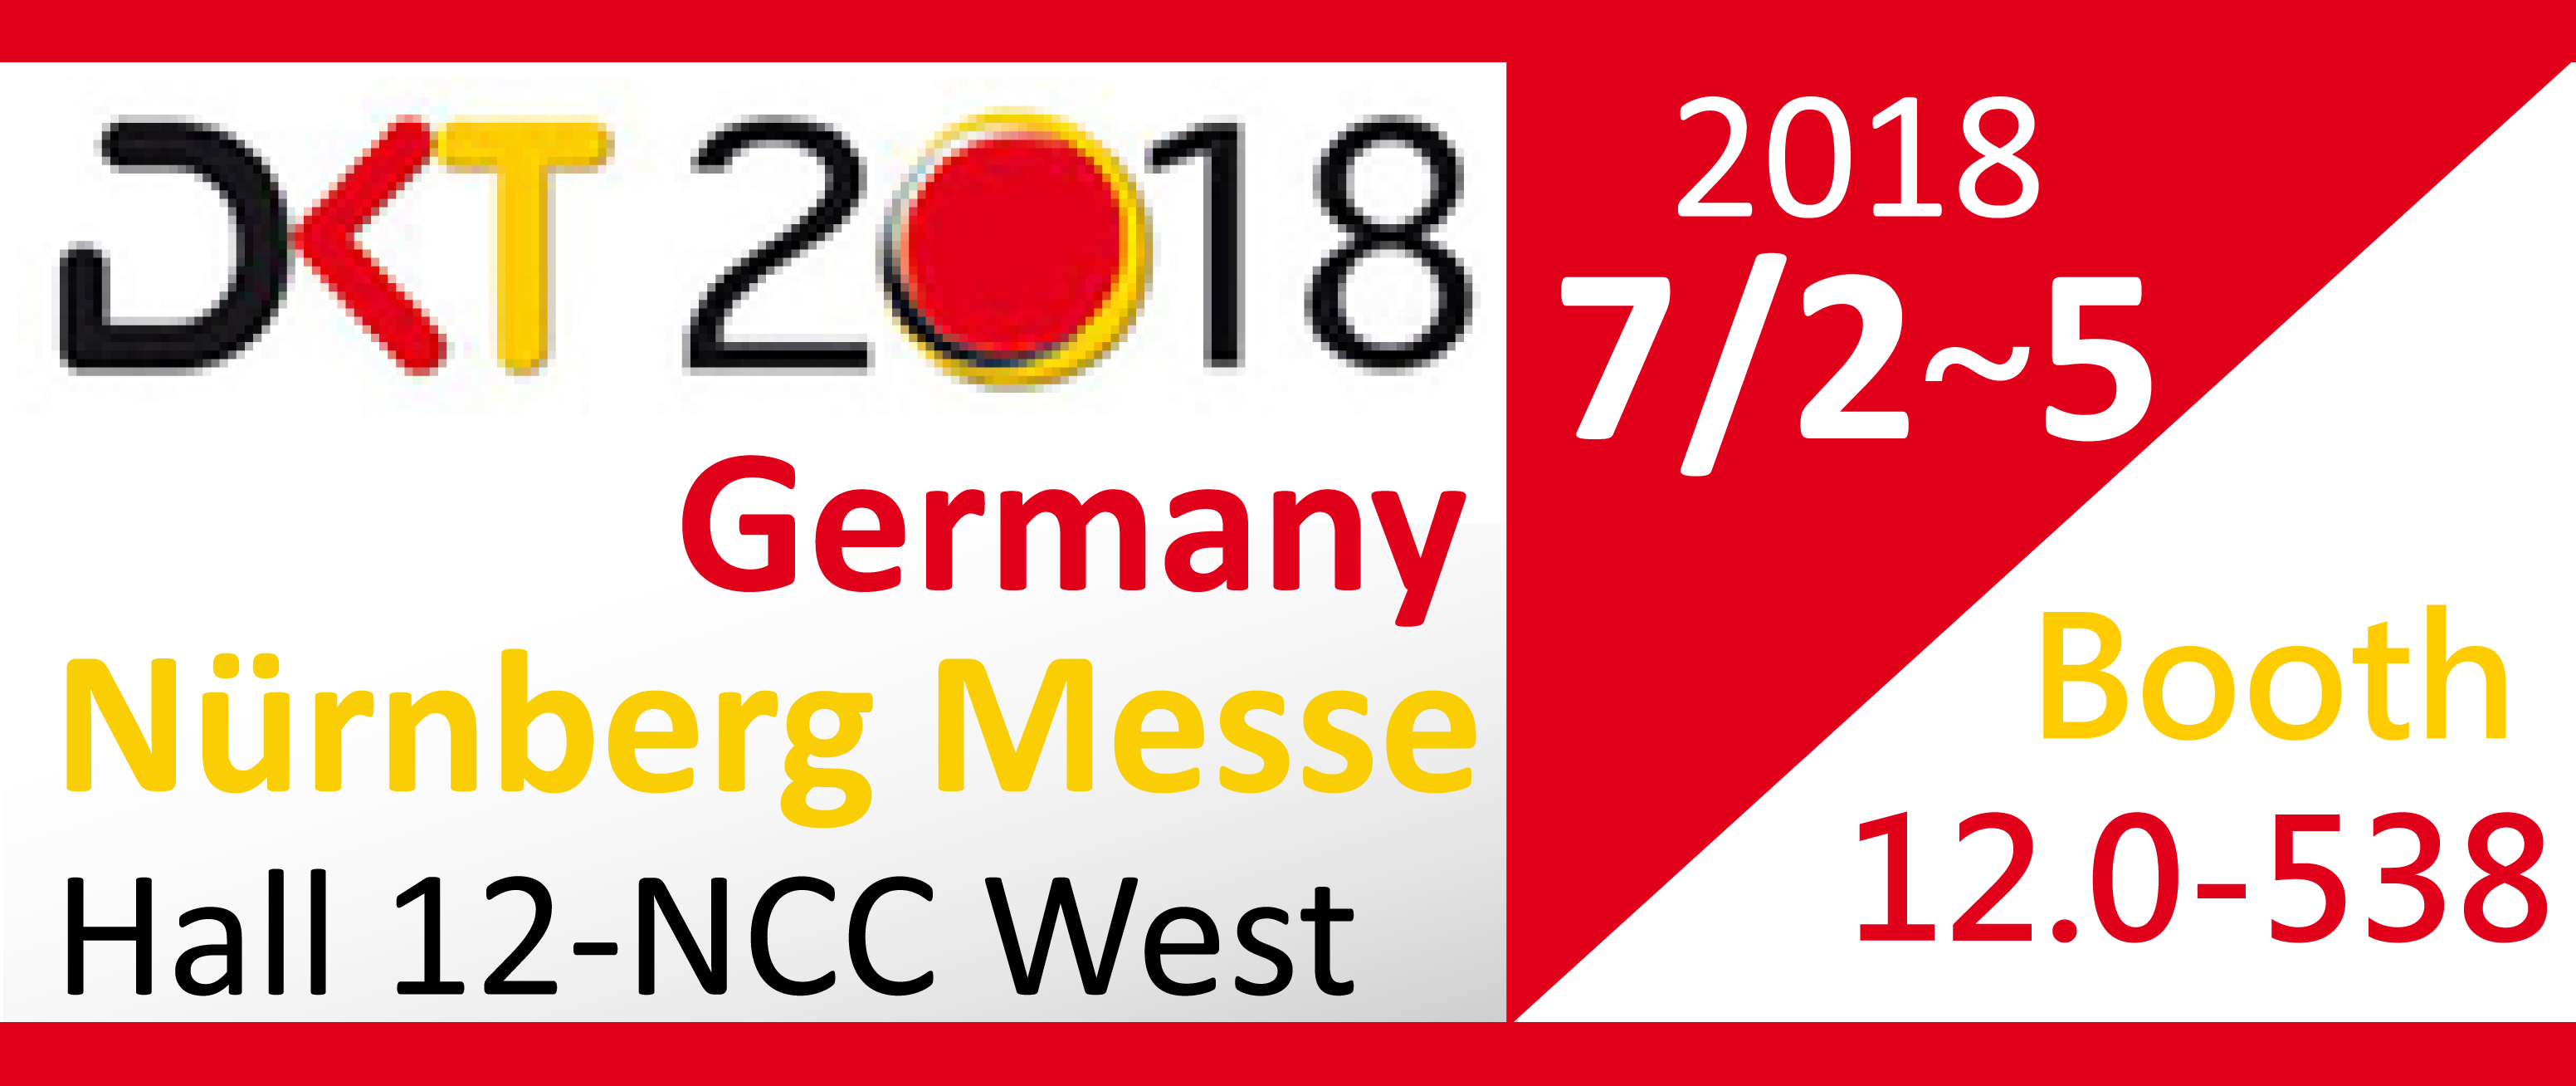 DKT 2018 in Germany